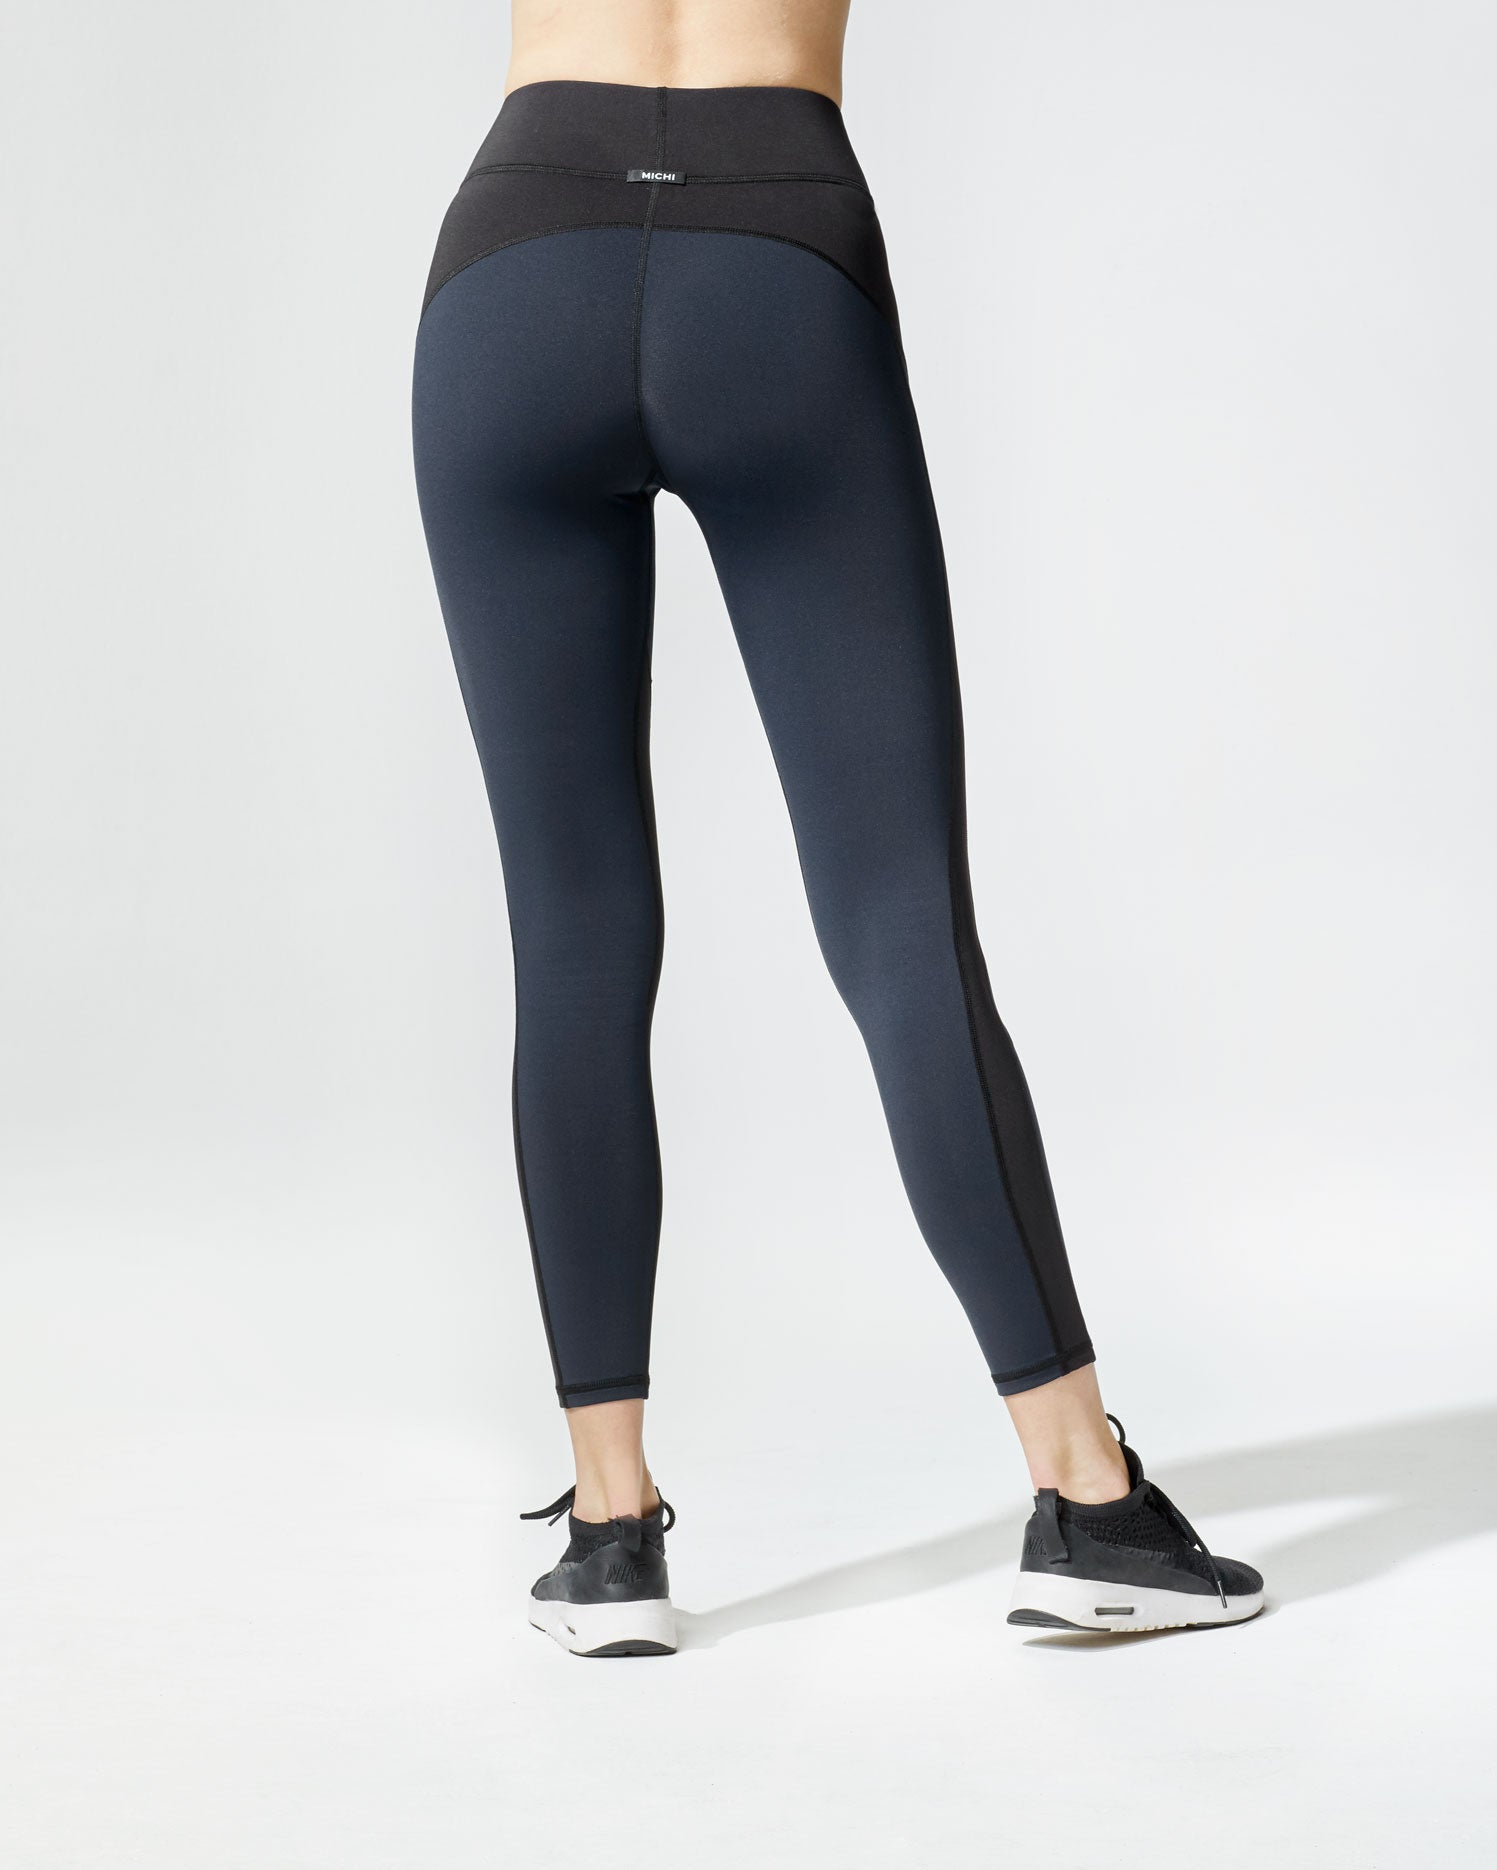 Extension Legging - Navy/Black